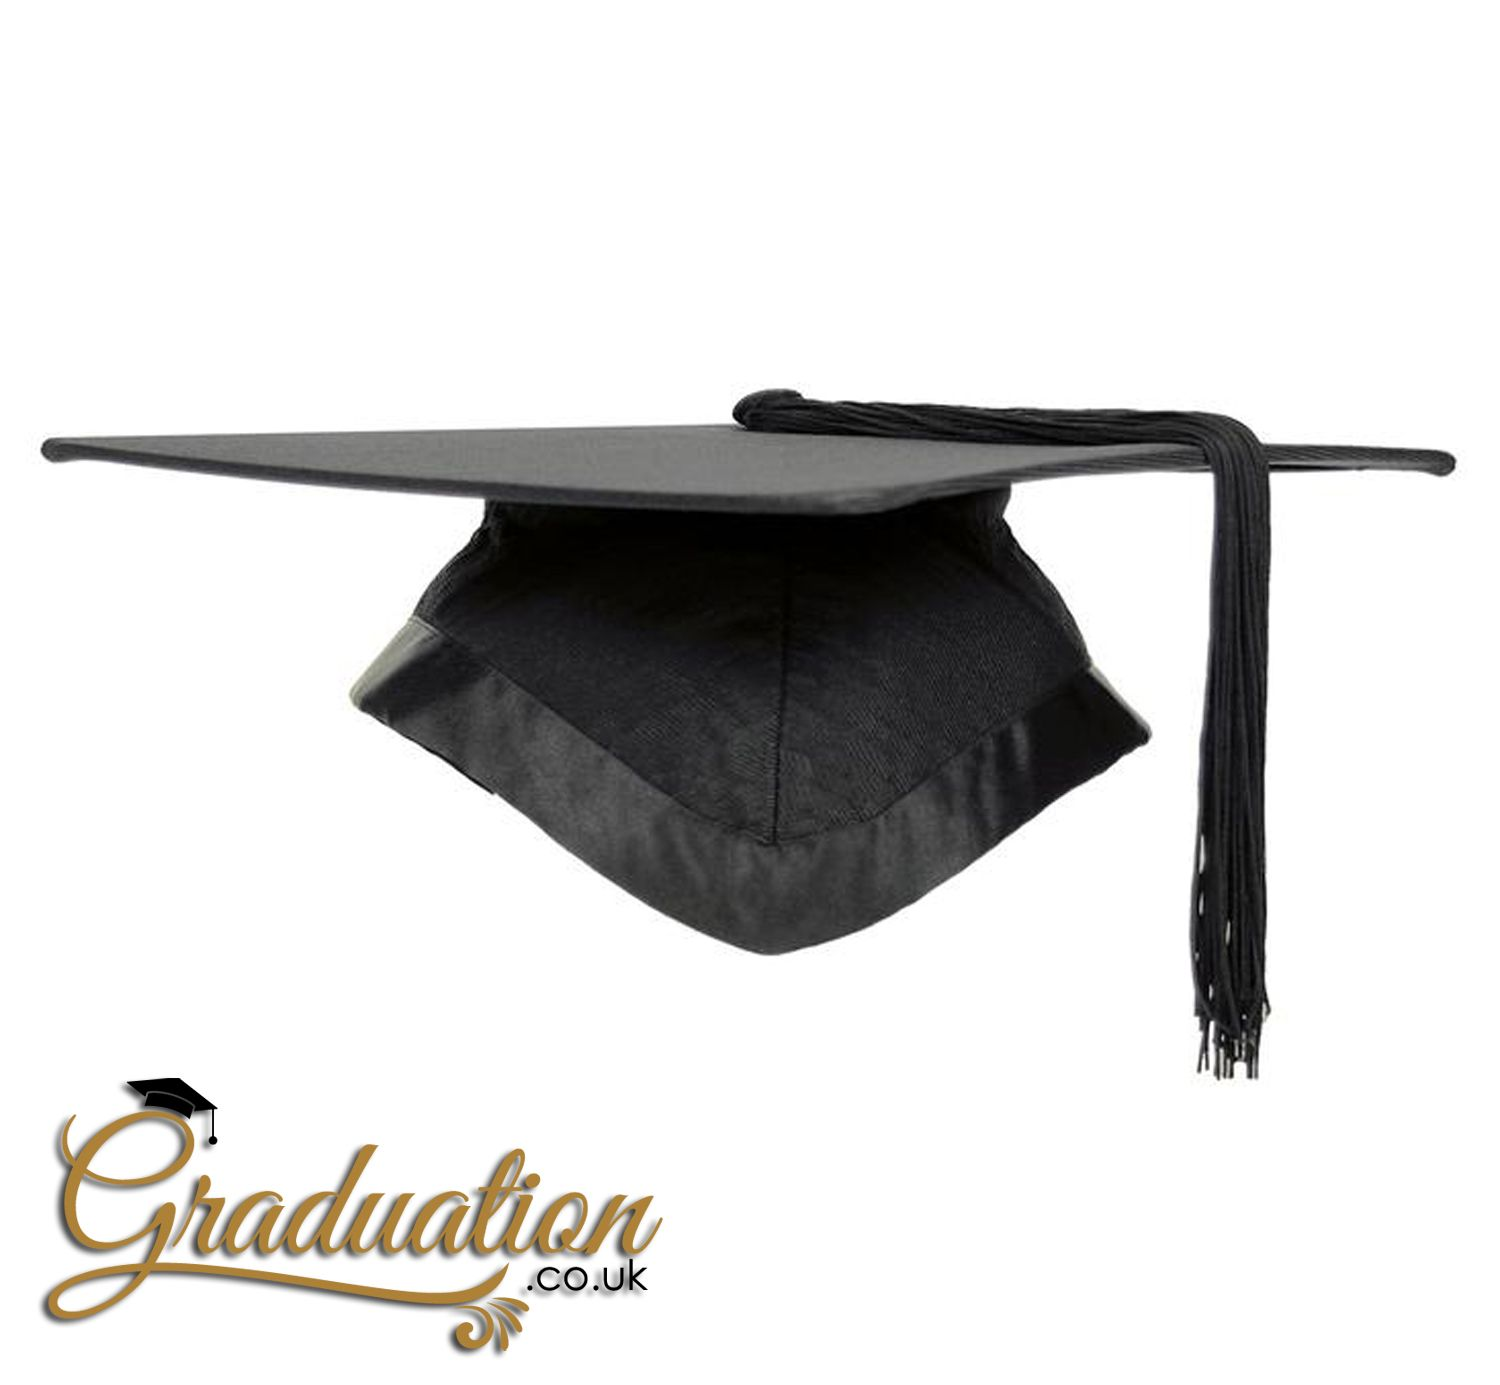 fitted university mortarboard graduation